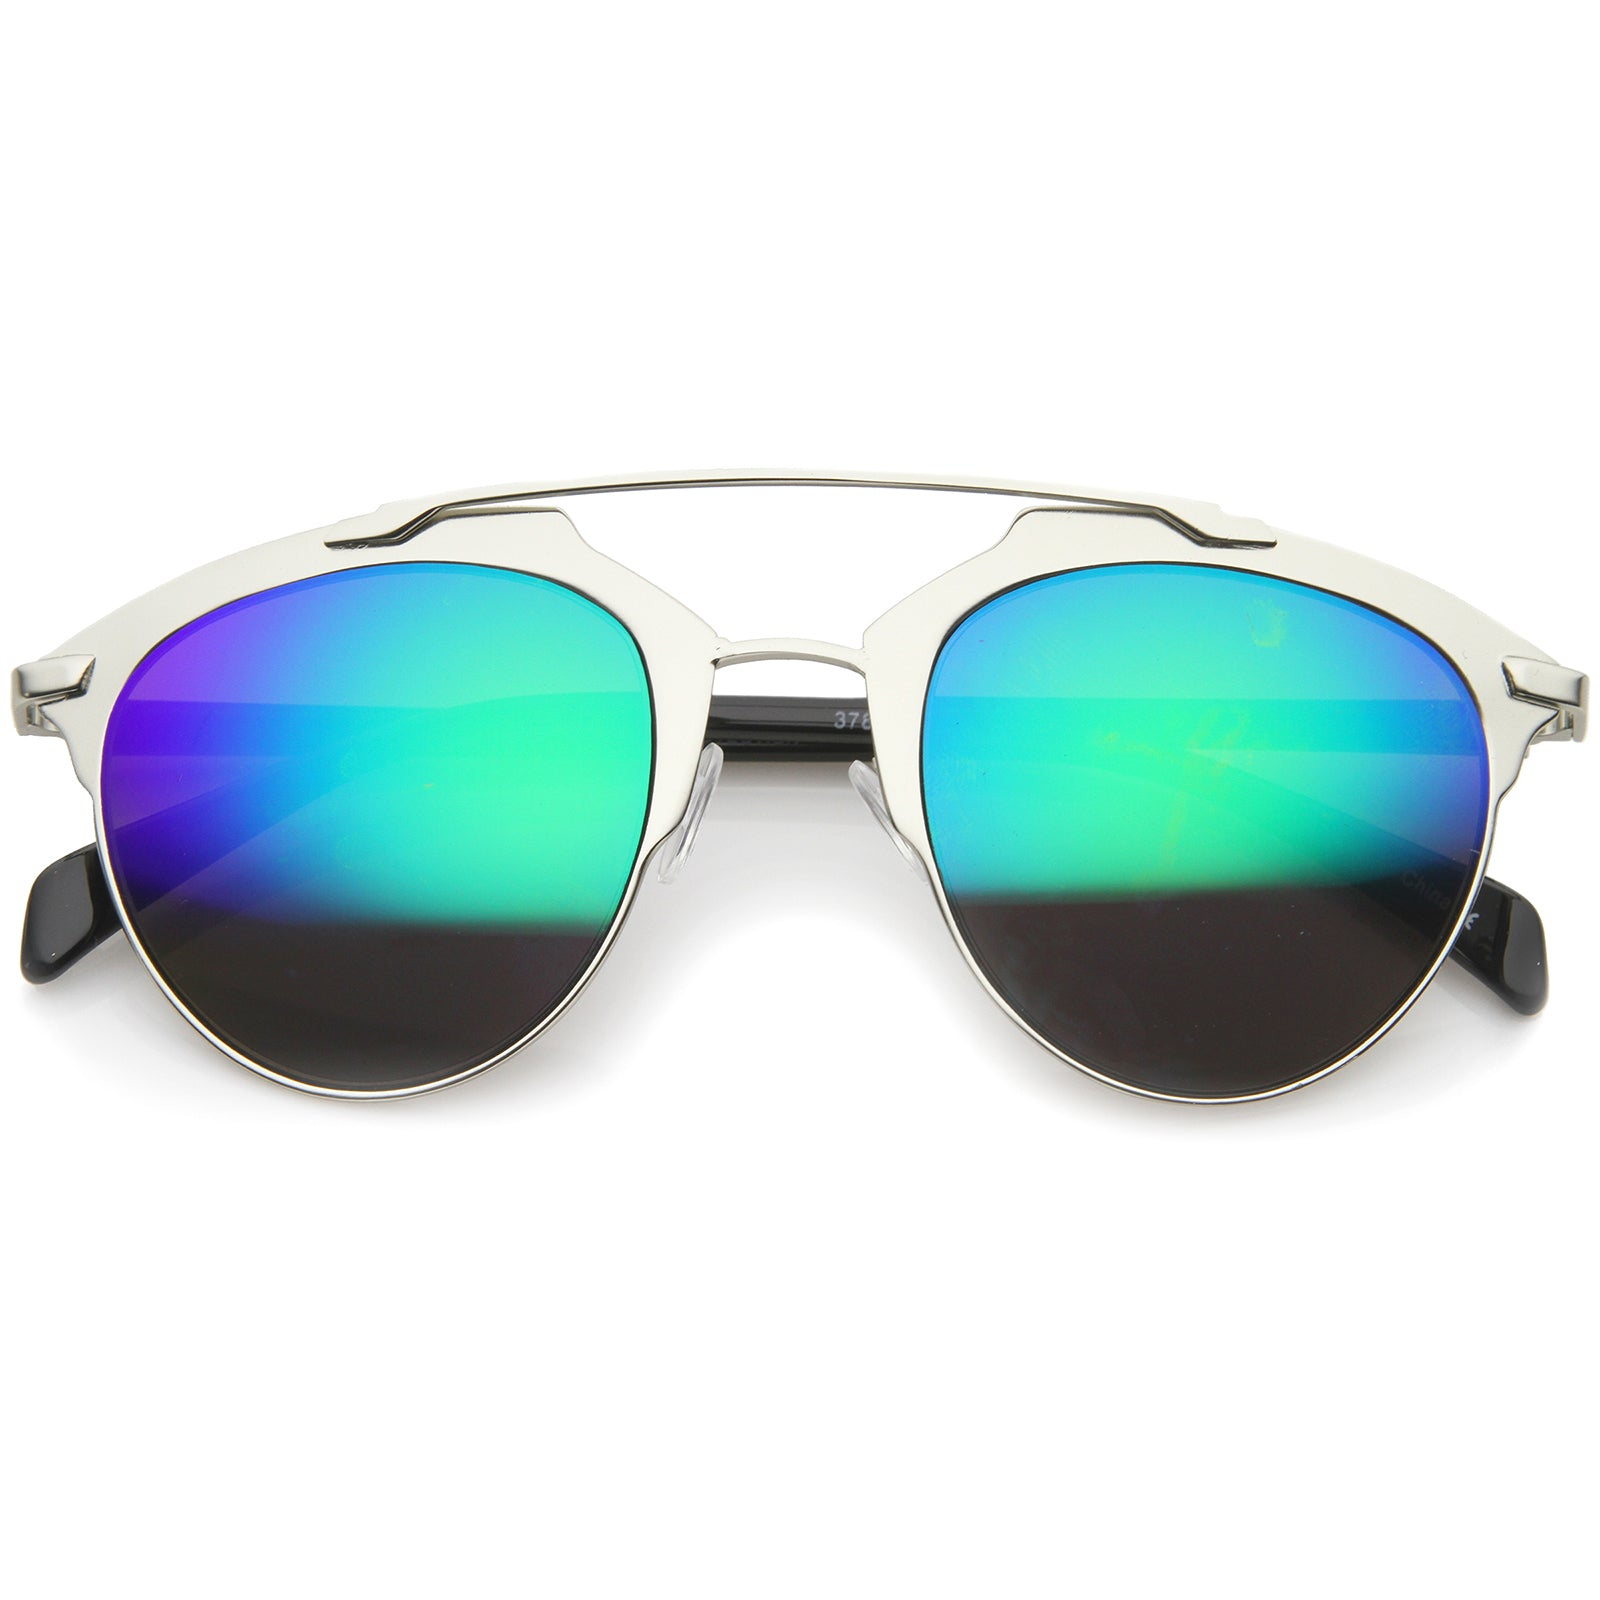 Modern Fashion Metal Double Bridge Mirror Lens Pantos Aviator Sunglasses 50mm - sunglass.la - 13